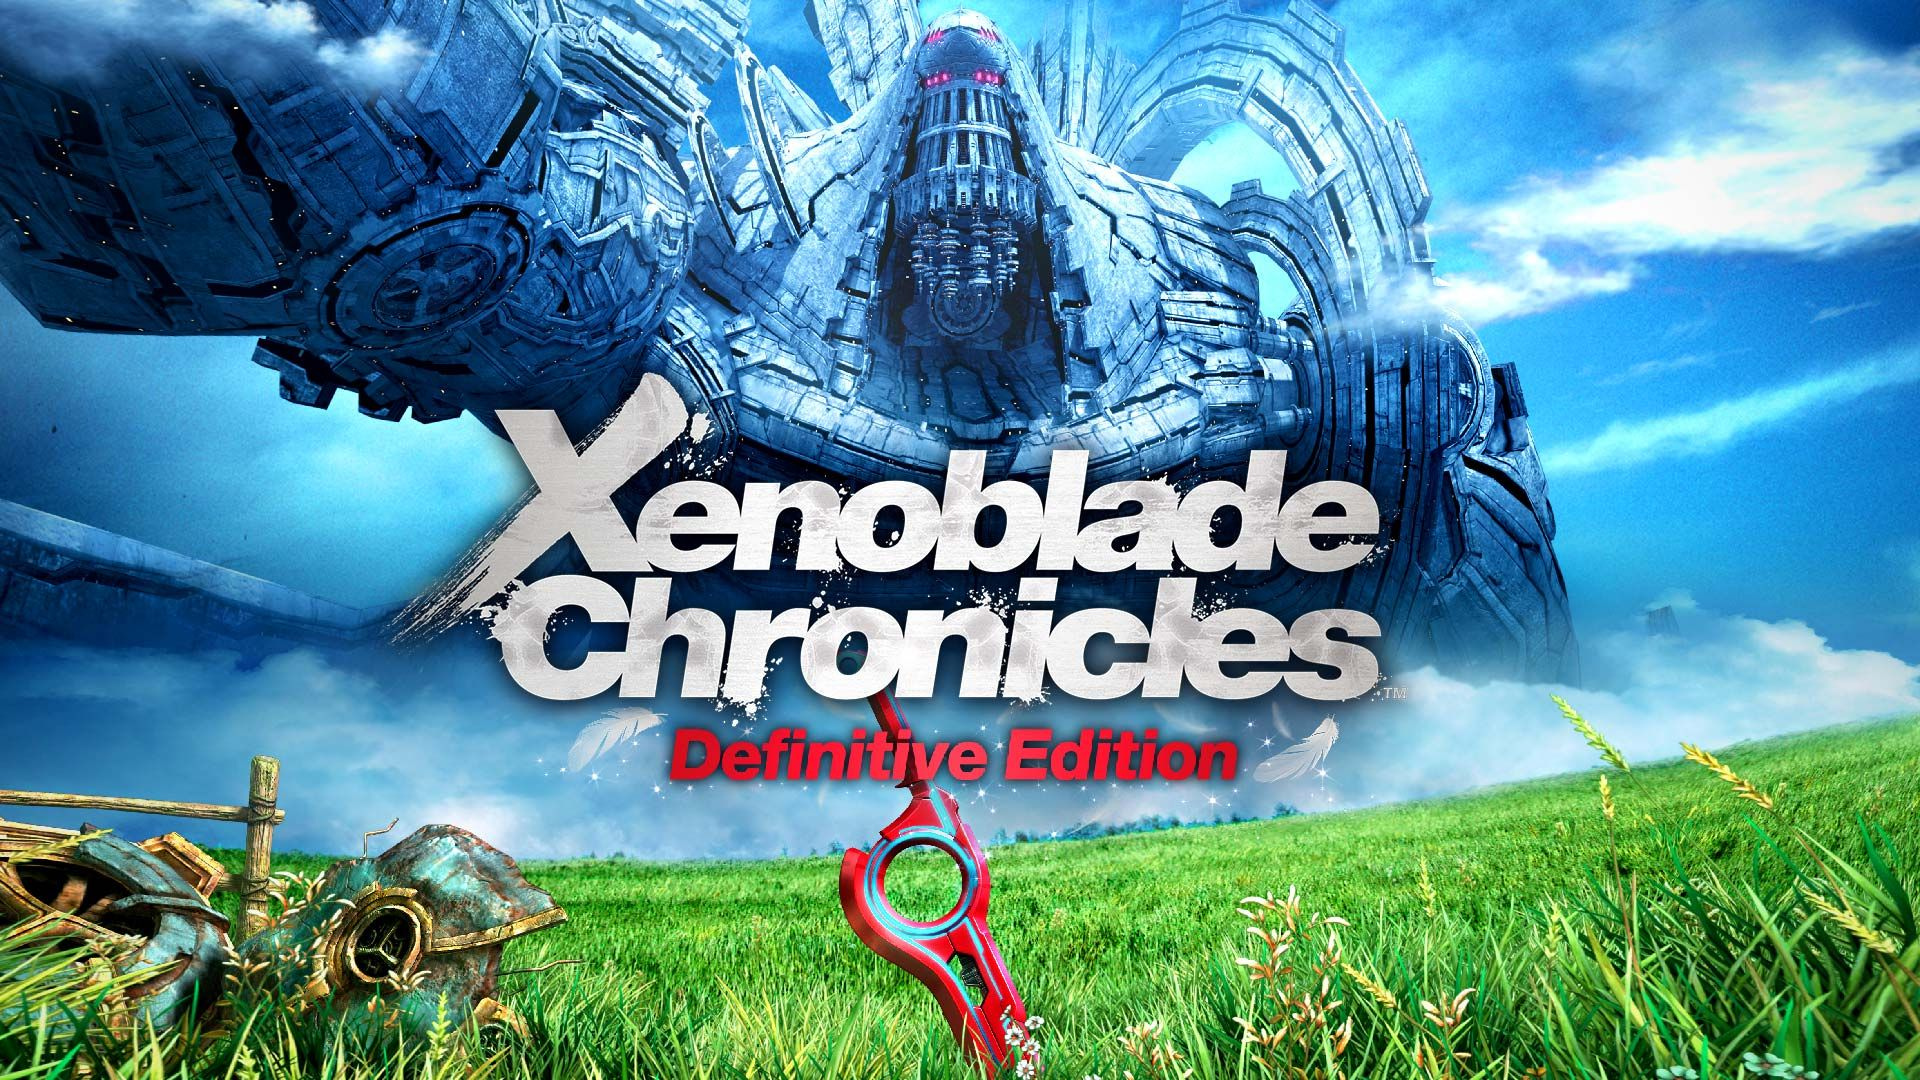 Xenoblades Chronicles Definitive Edition Principal